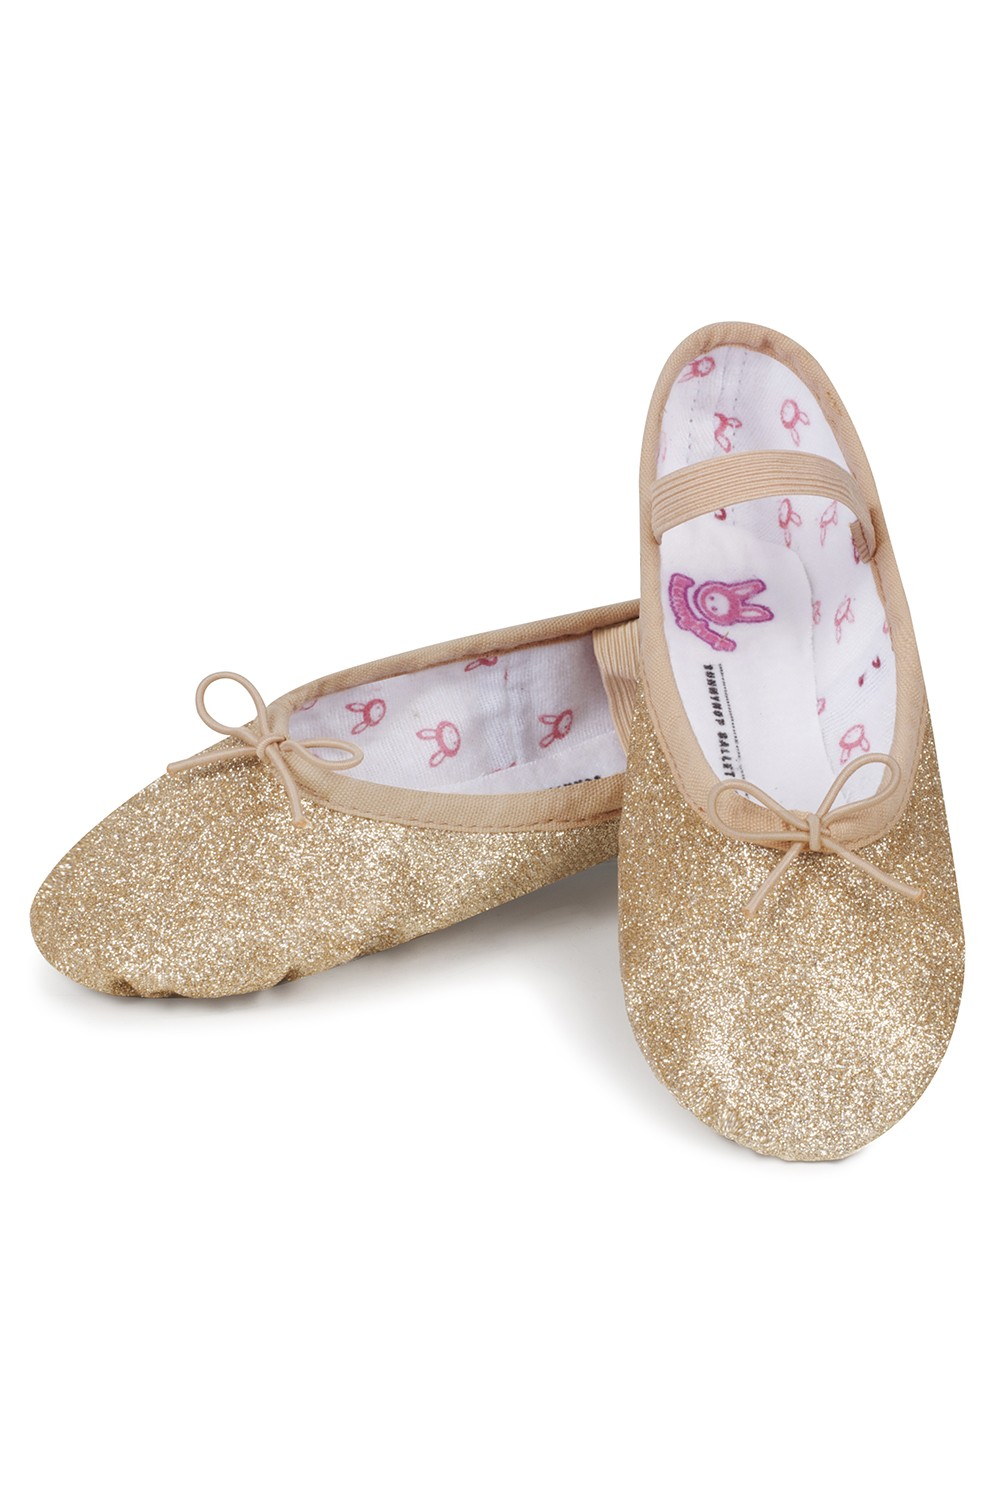 Glitterdust - Toddler Girl's Ballet Shoes